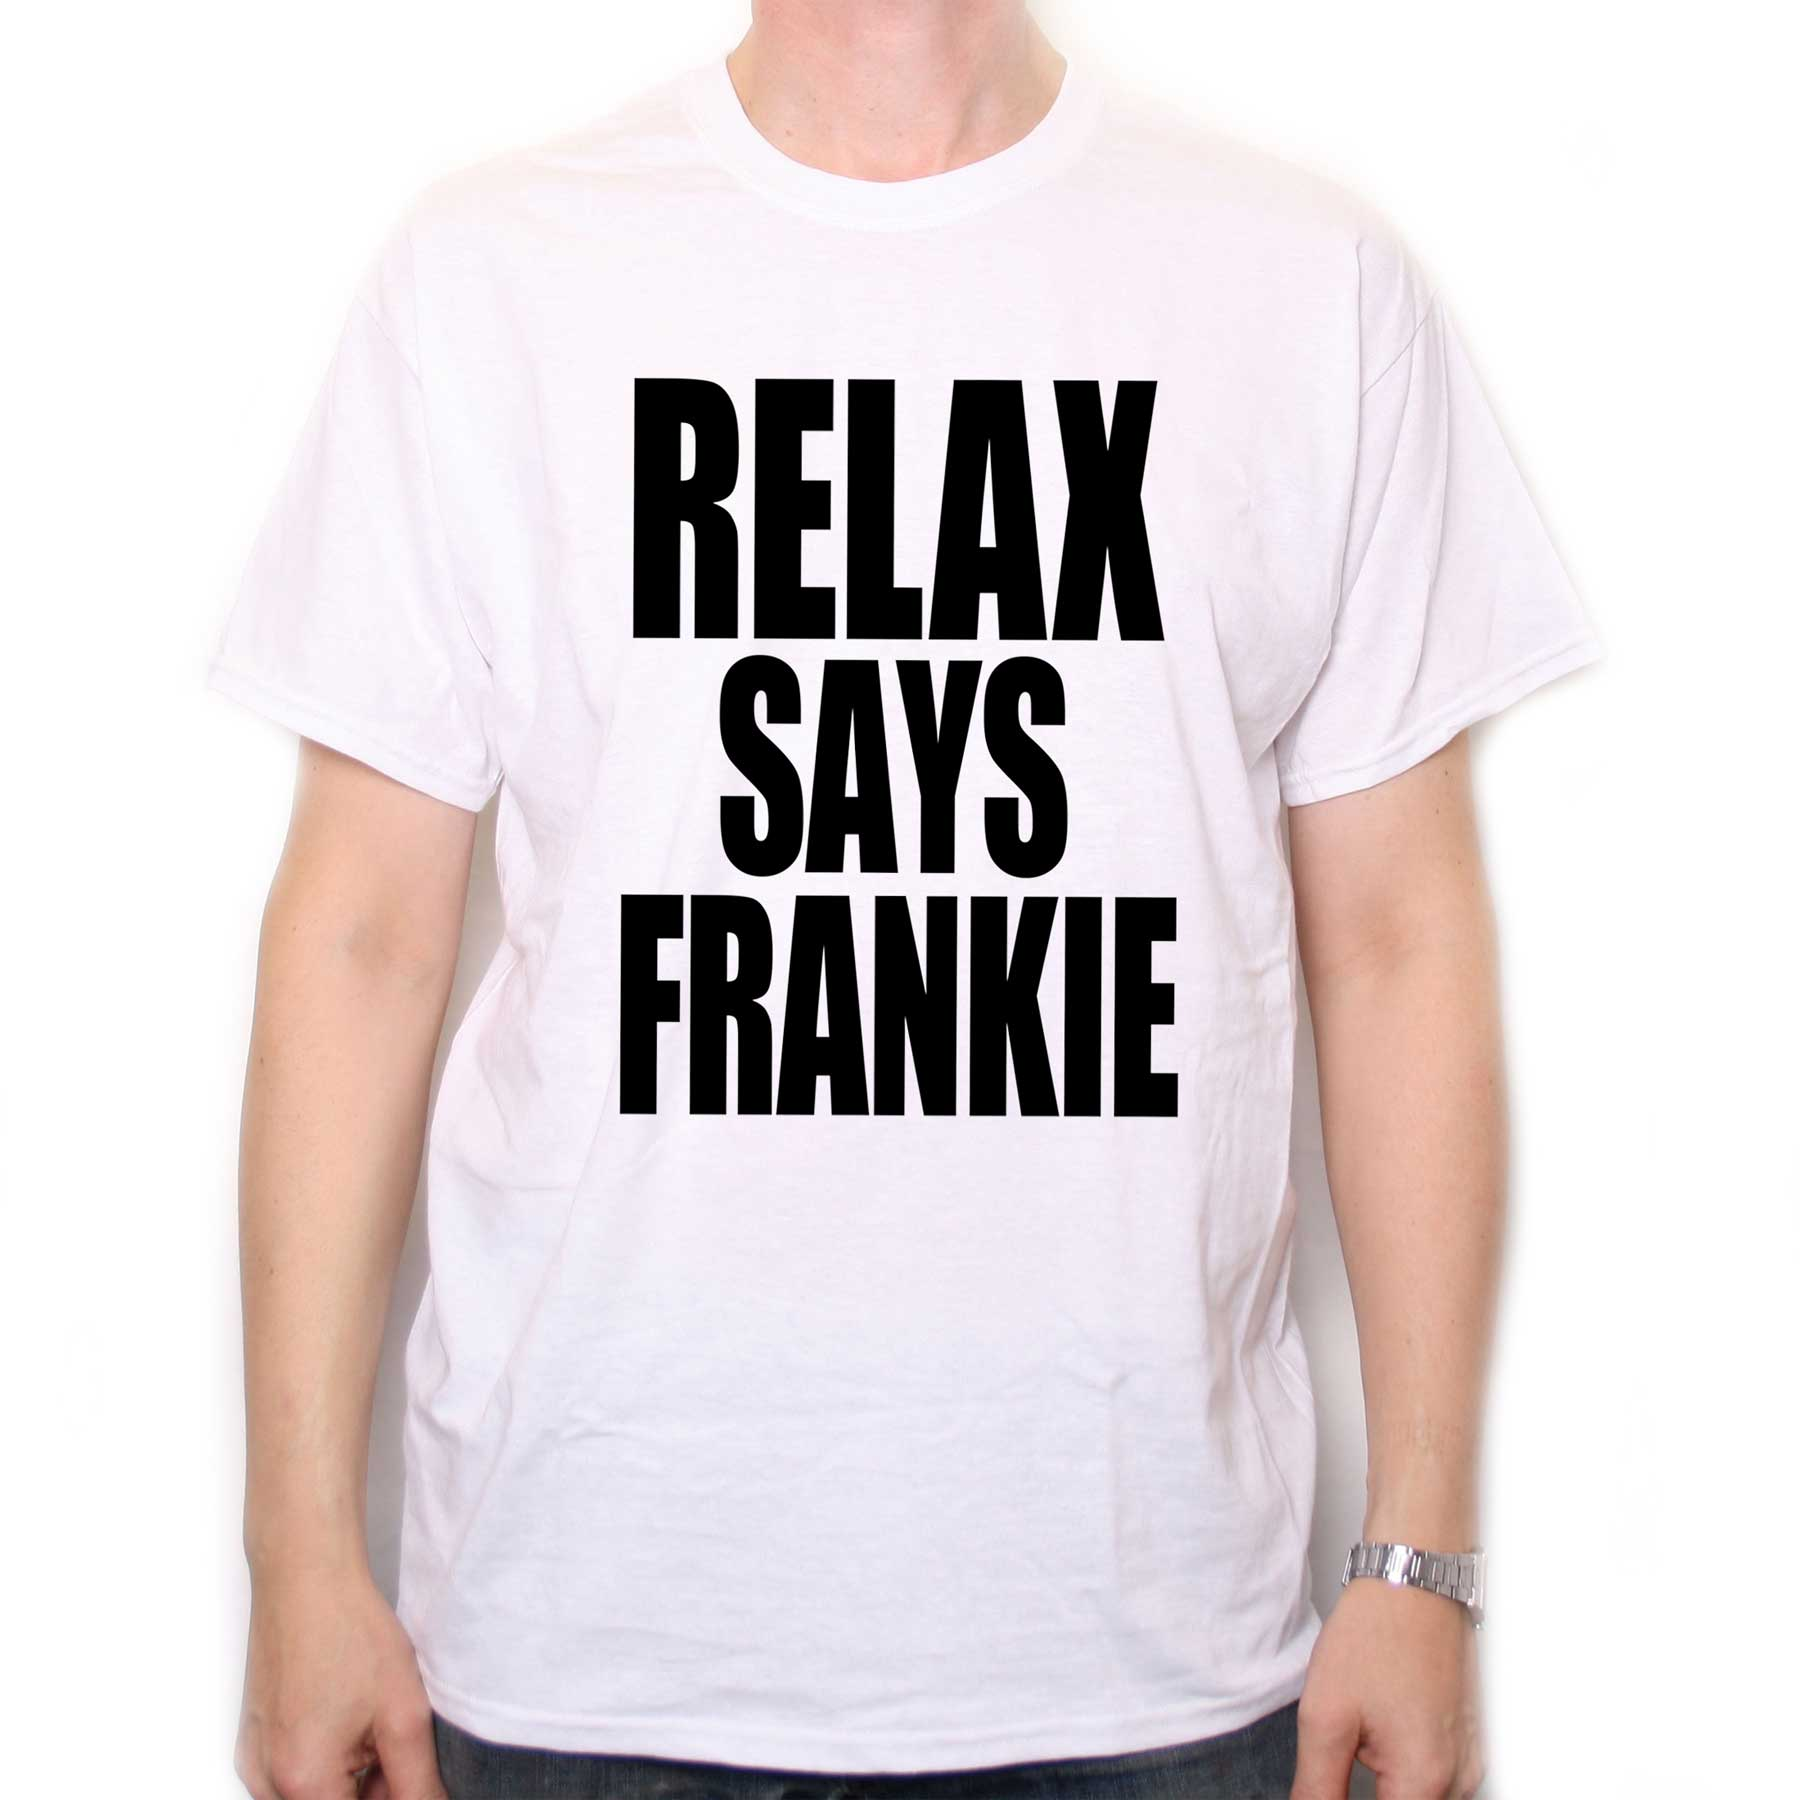 Frankie Says Whistle t-shirt